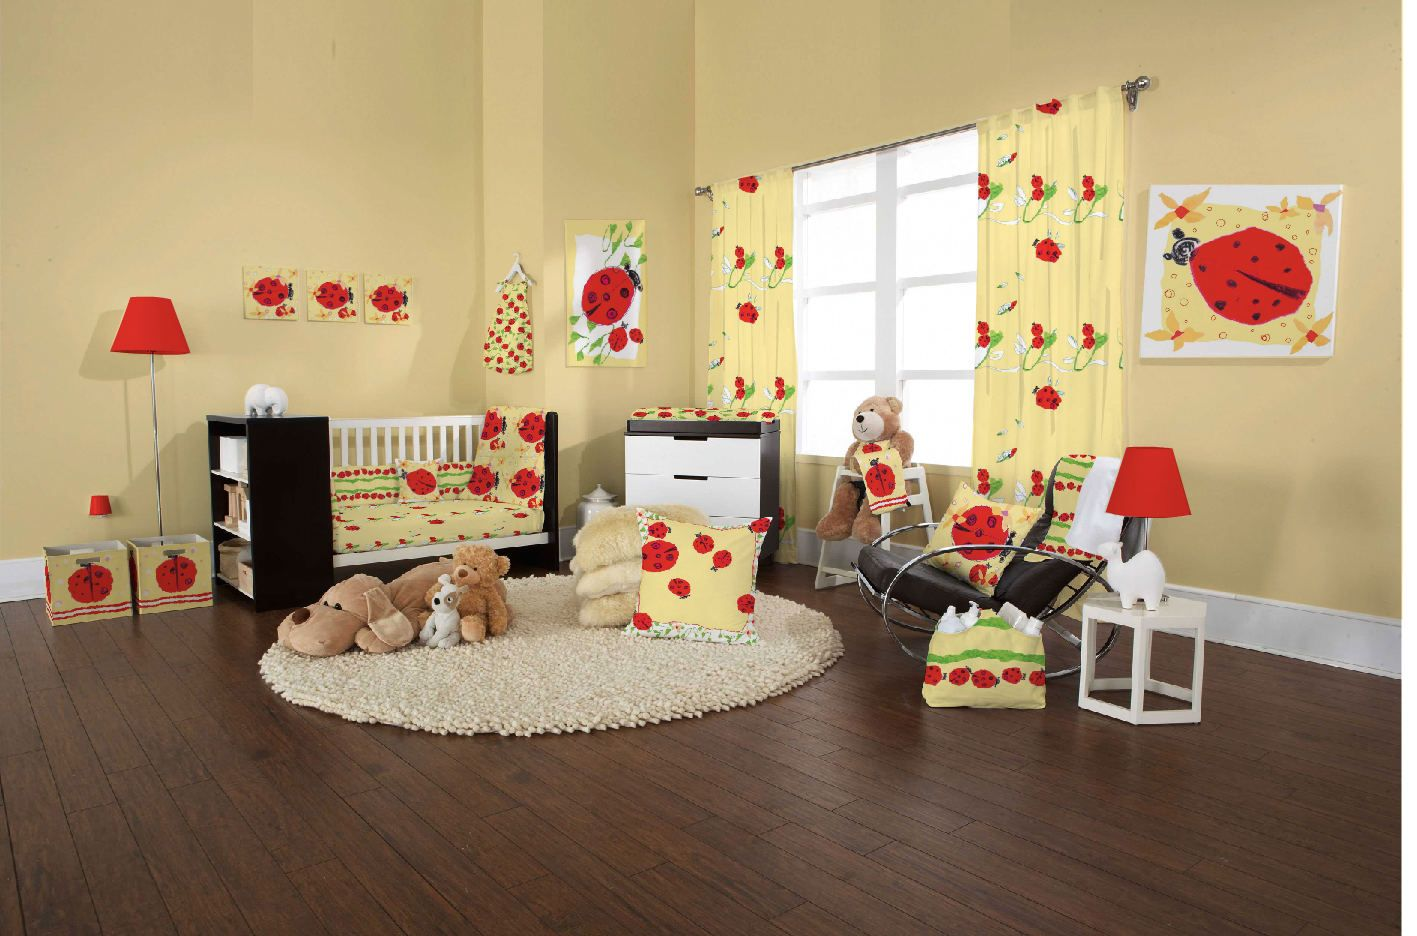 yellow ladybug nursery-room-decorations-unique-nursery-ideas-wall ...